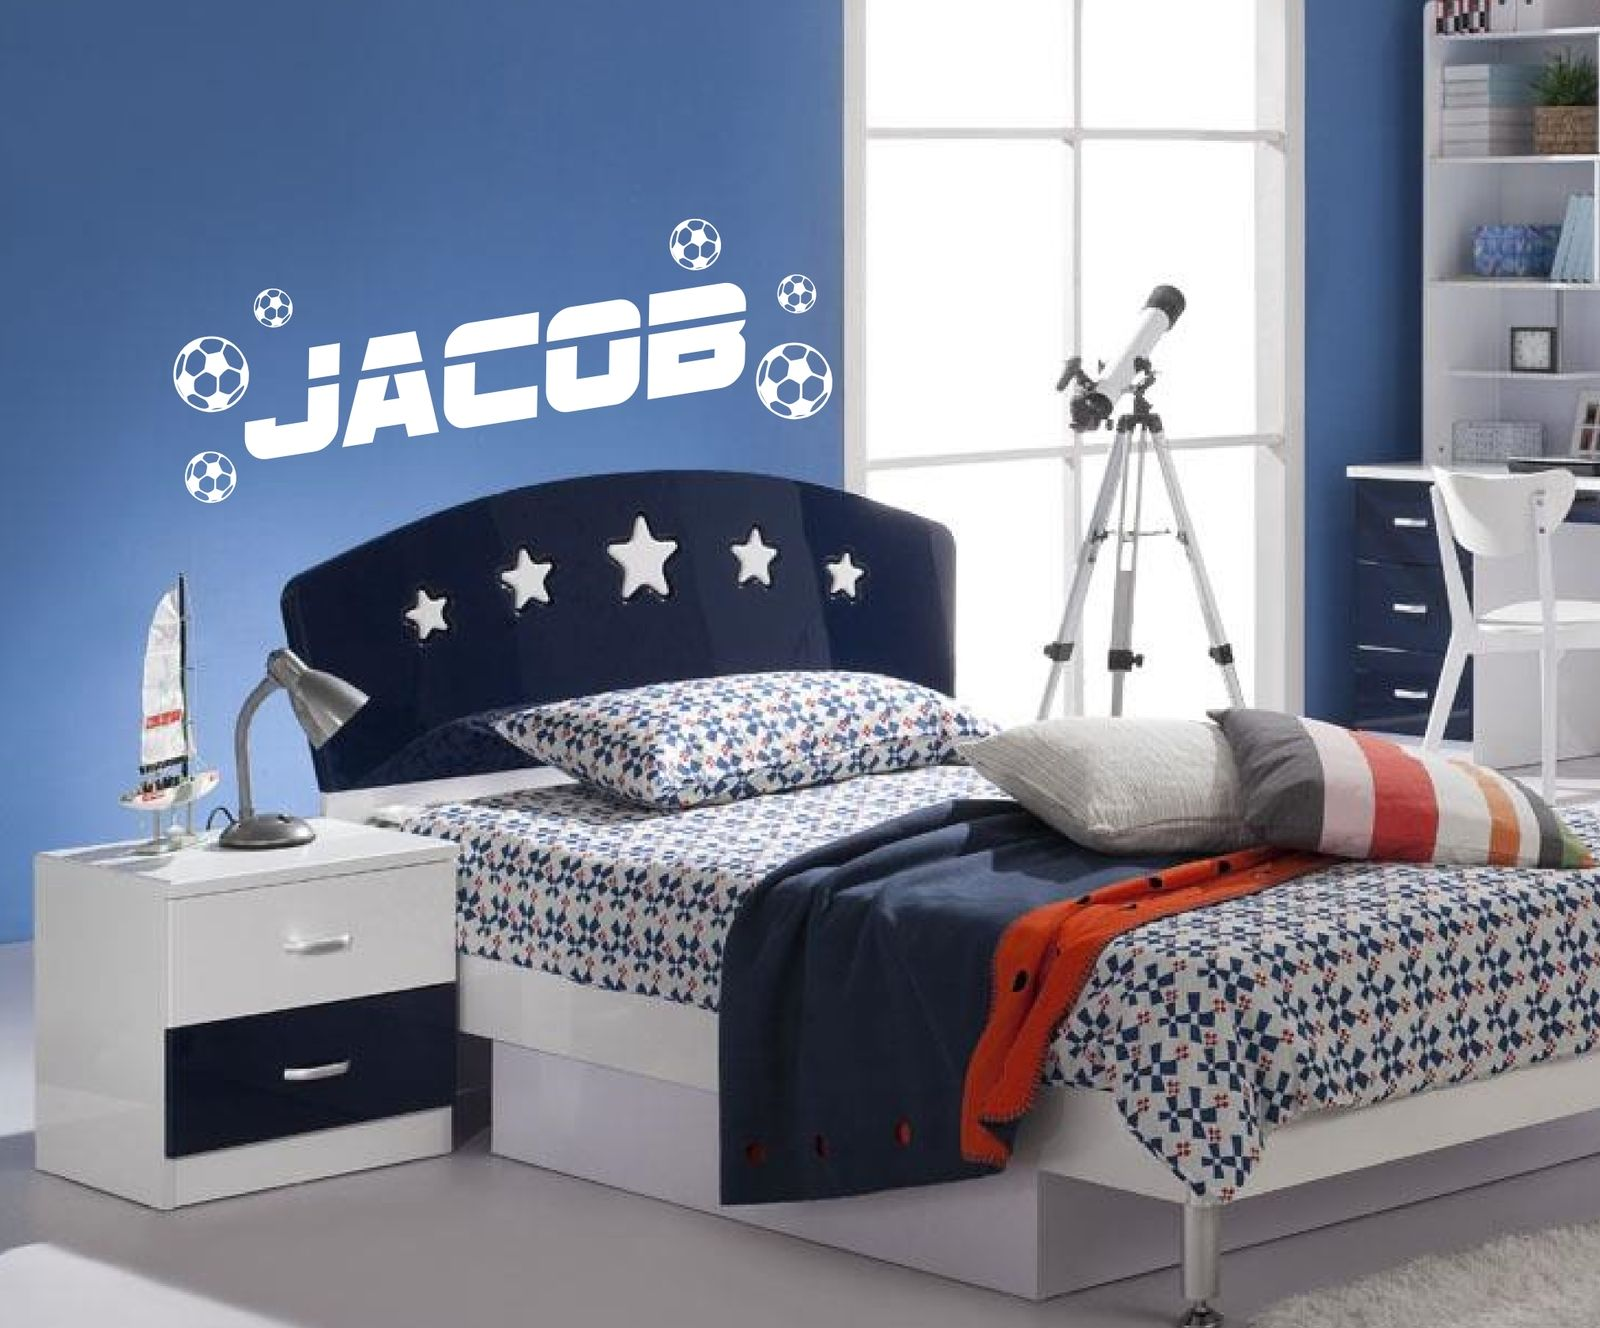 Kids Sports Bedroom Decor Compare Prices On Kids Football Bedroom Online Shopping Buy Low